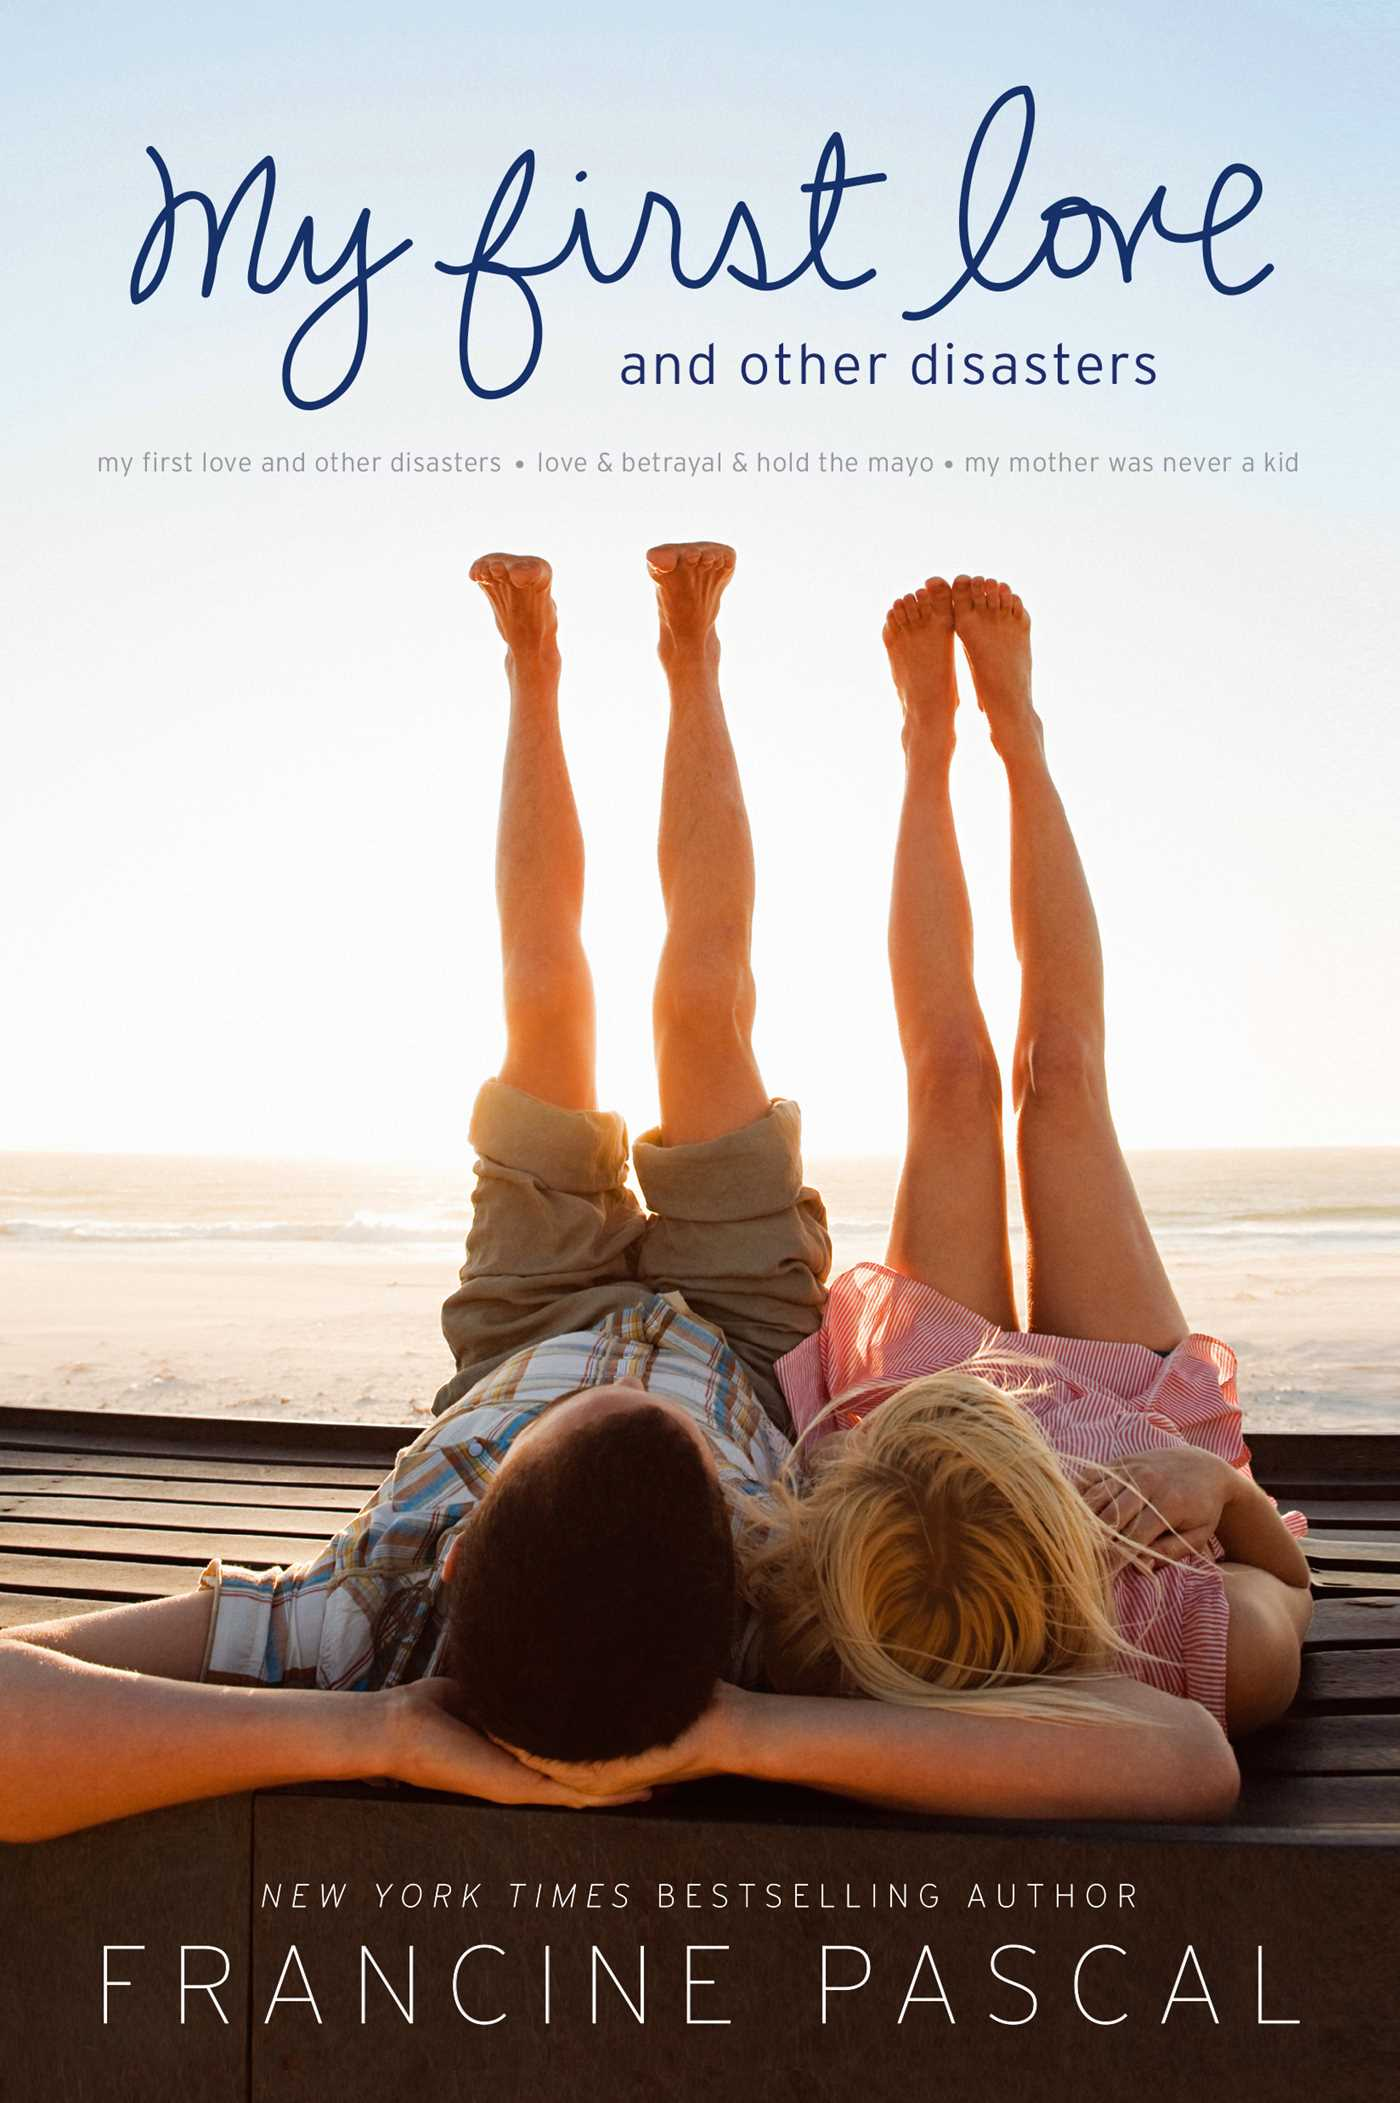 Book Cover About Love ~ My first love and other disasters book by francine